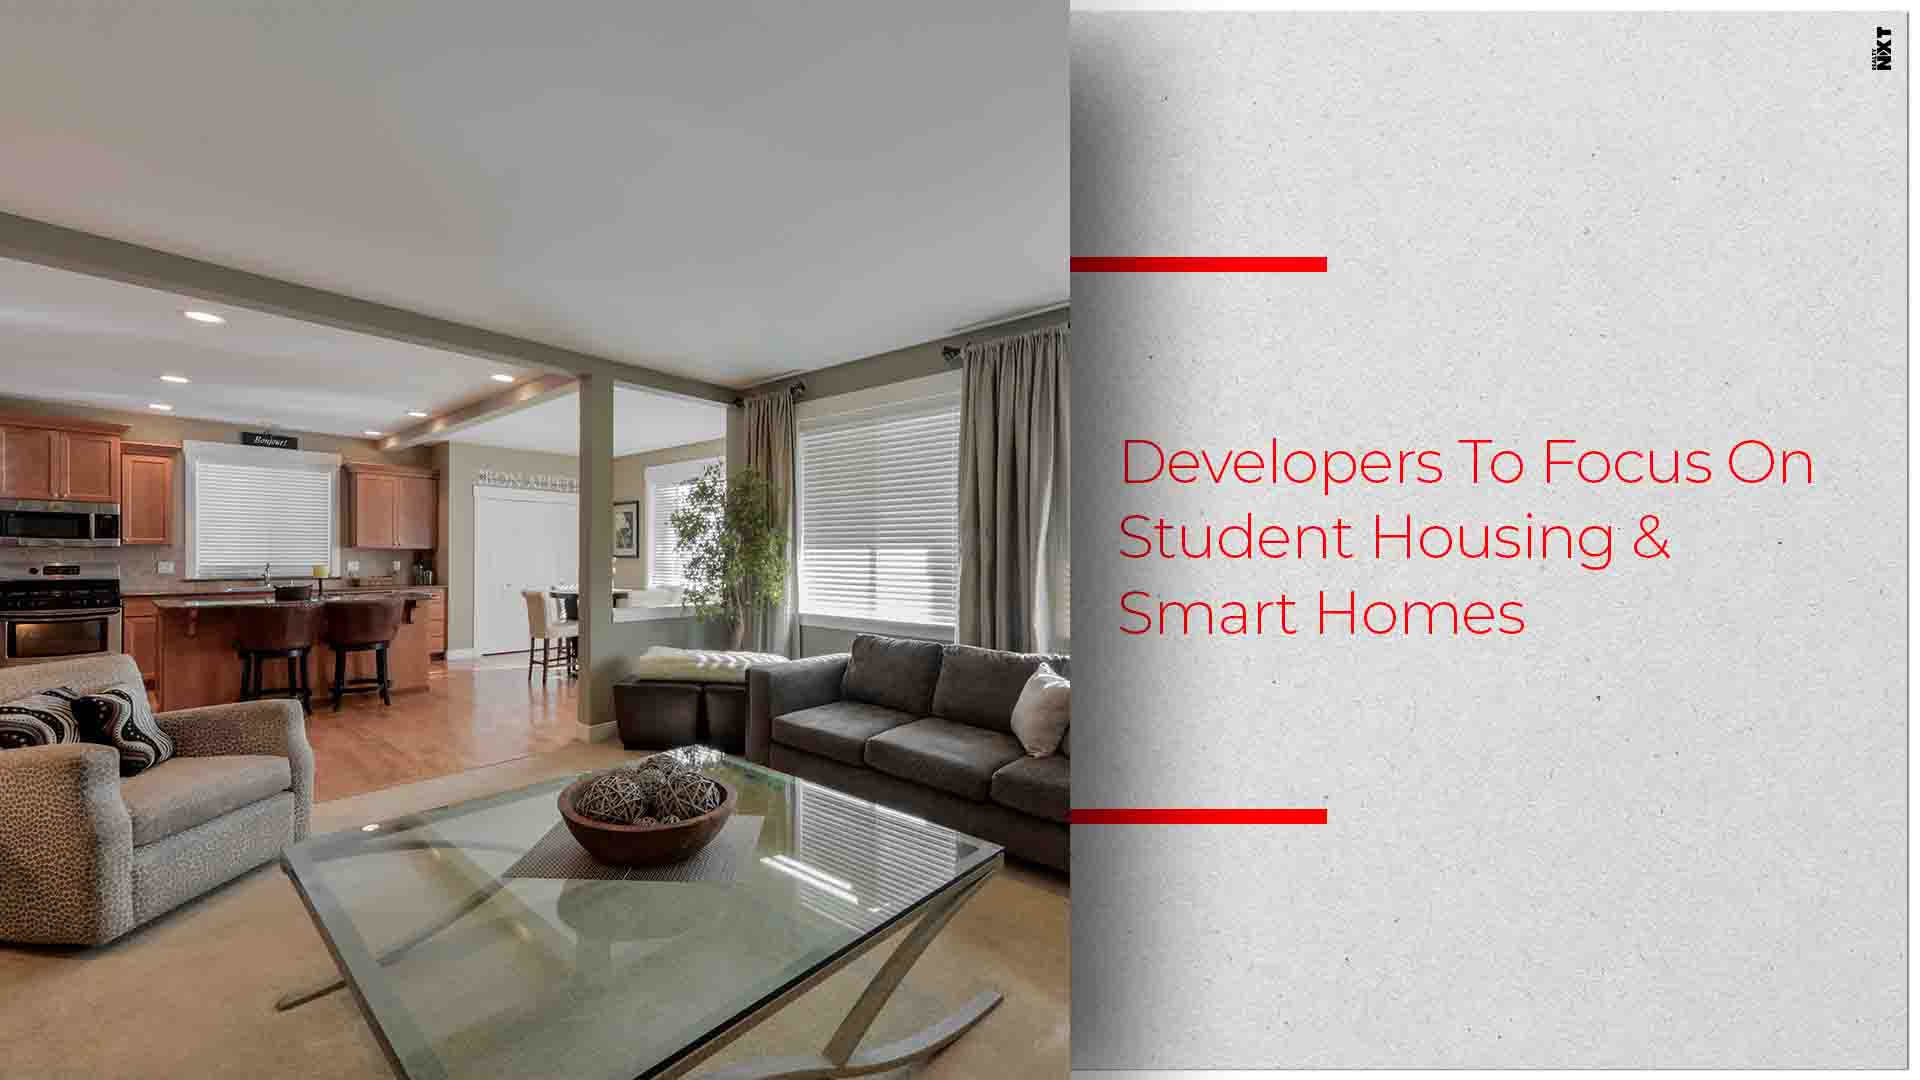 Builders To Focus On Student Housing And Smart Homes In 2019